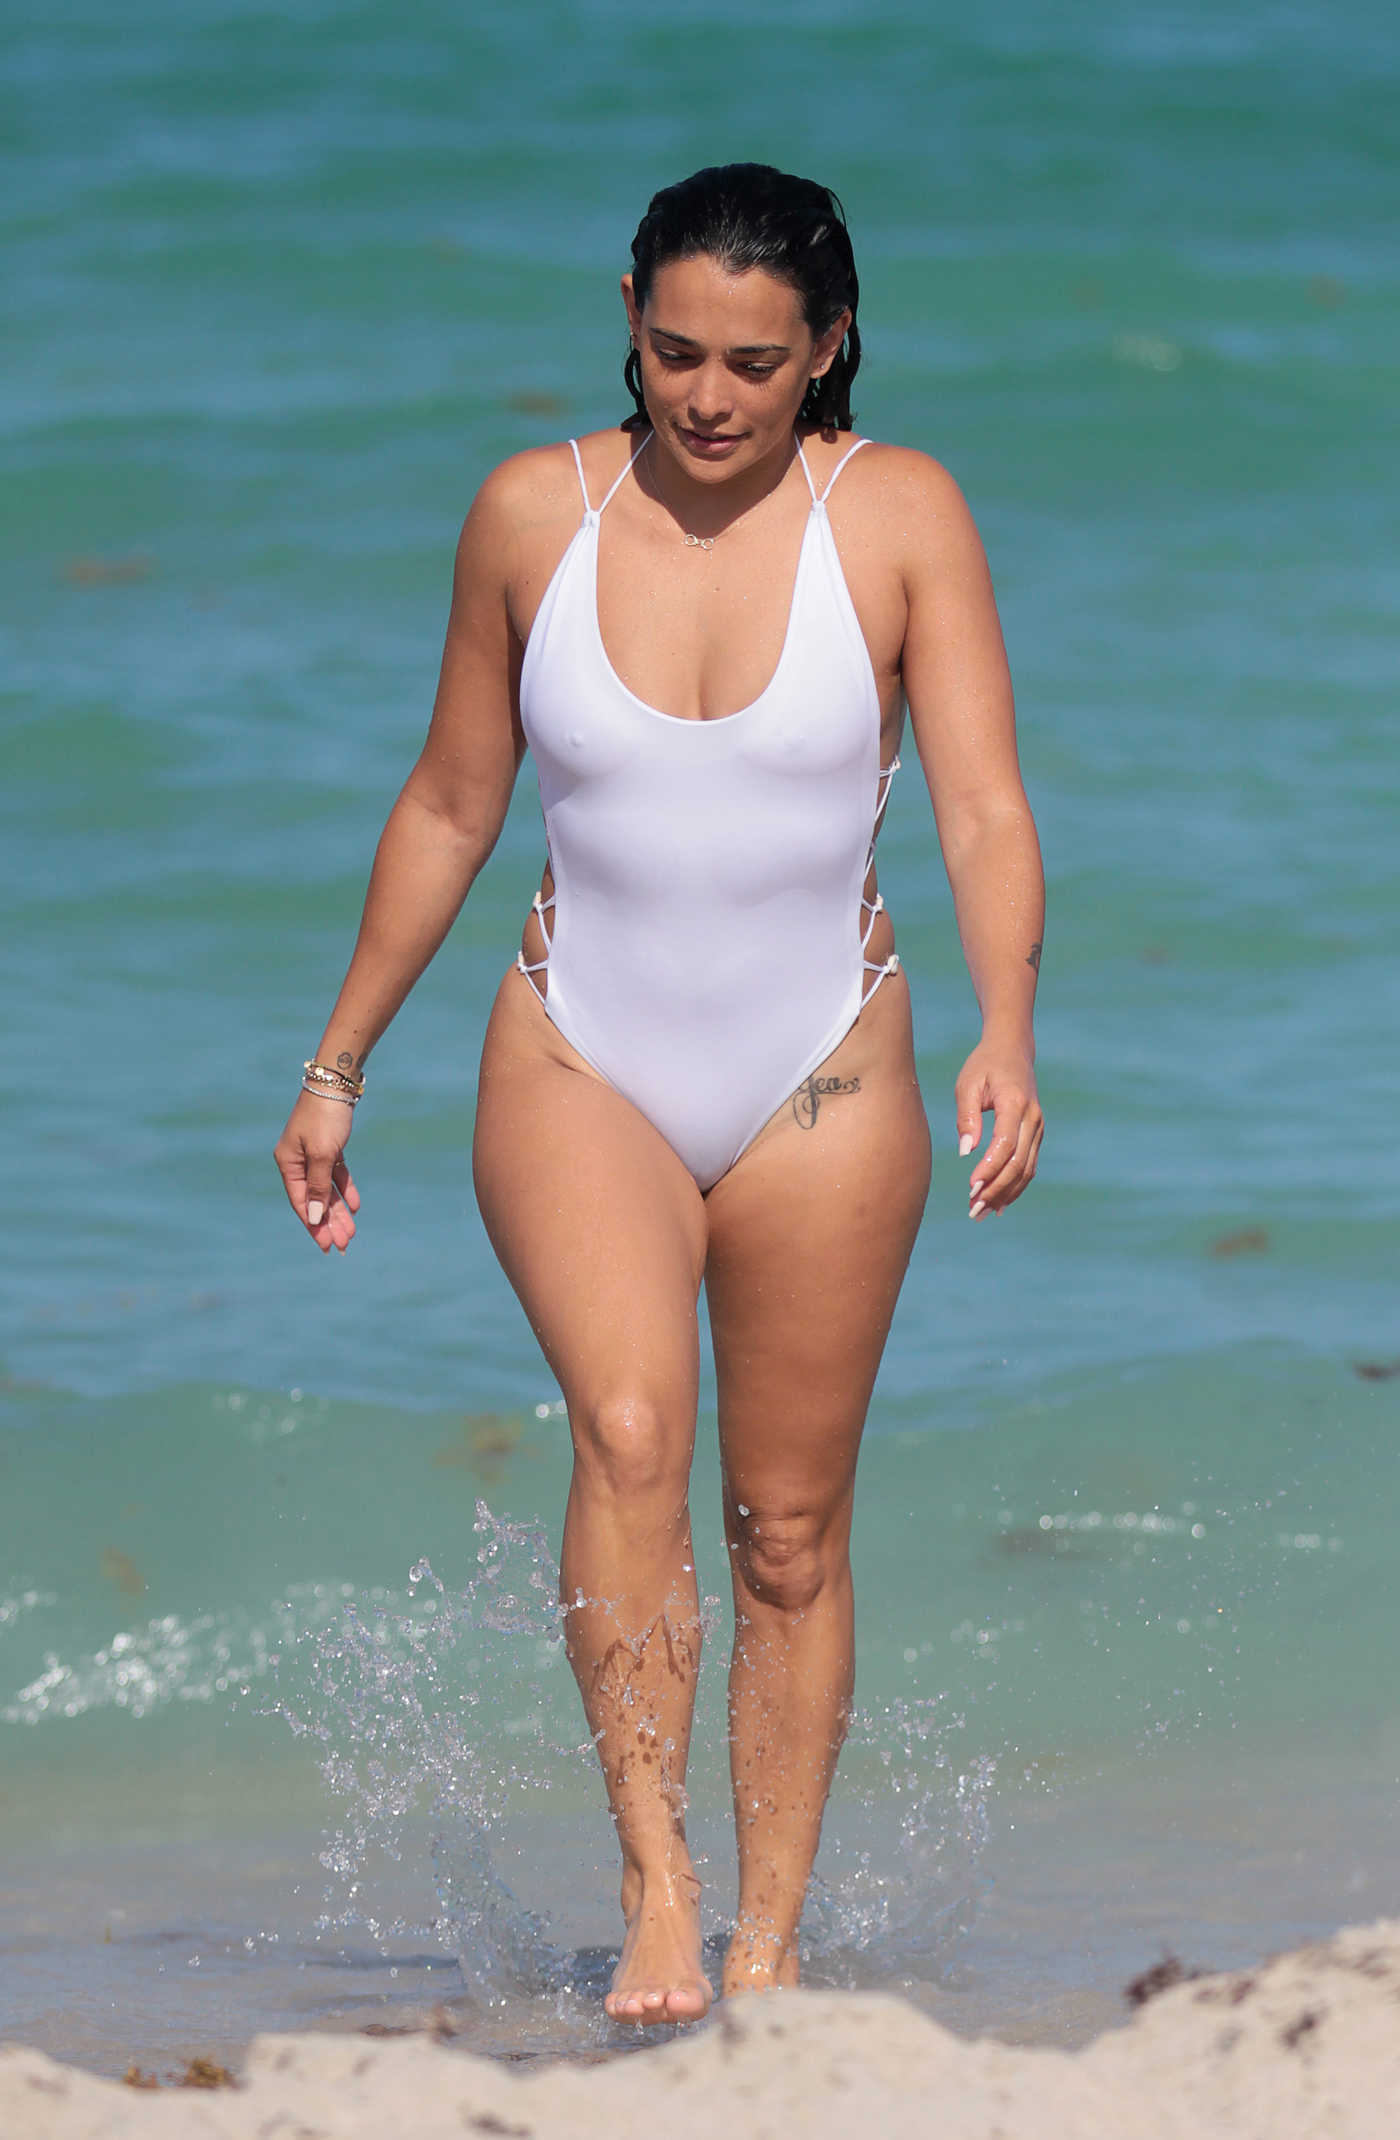 Natalie Martinez Wears a White Swimsuit at the Beach in Miami 07/08/2017